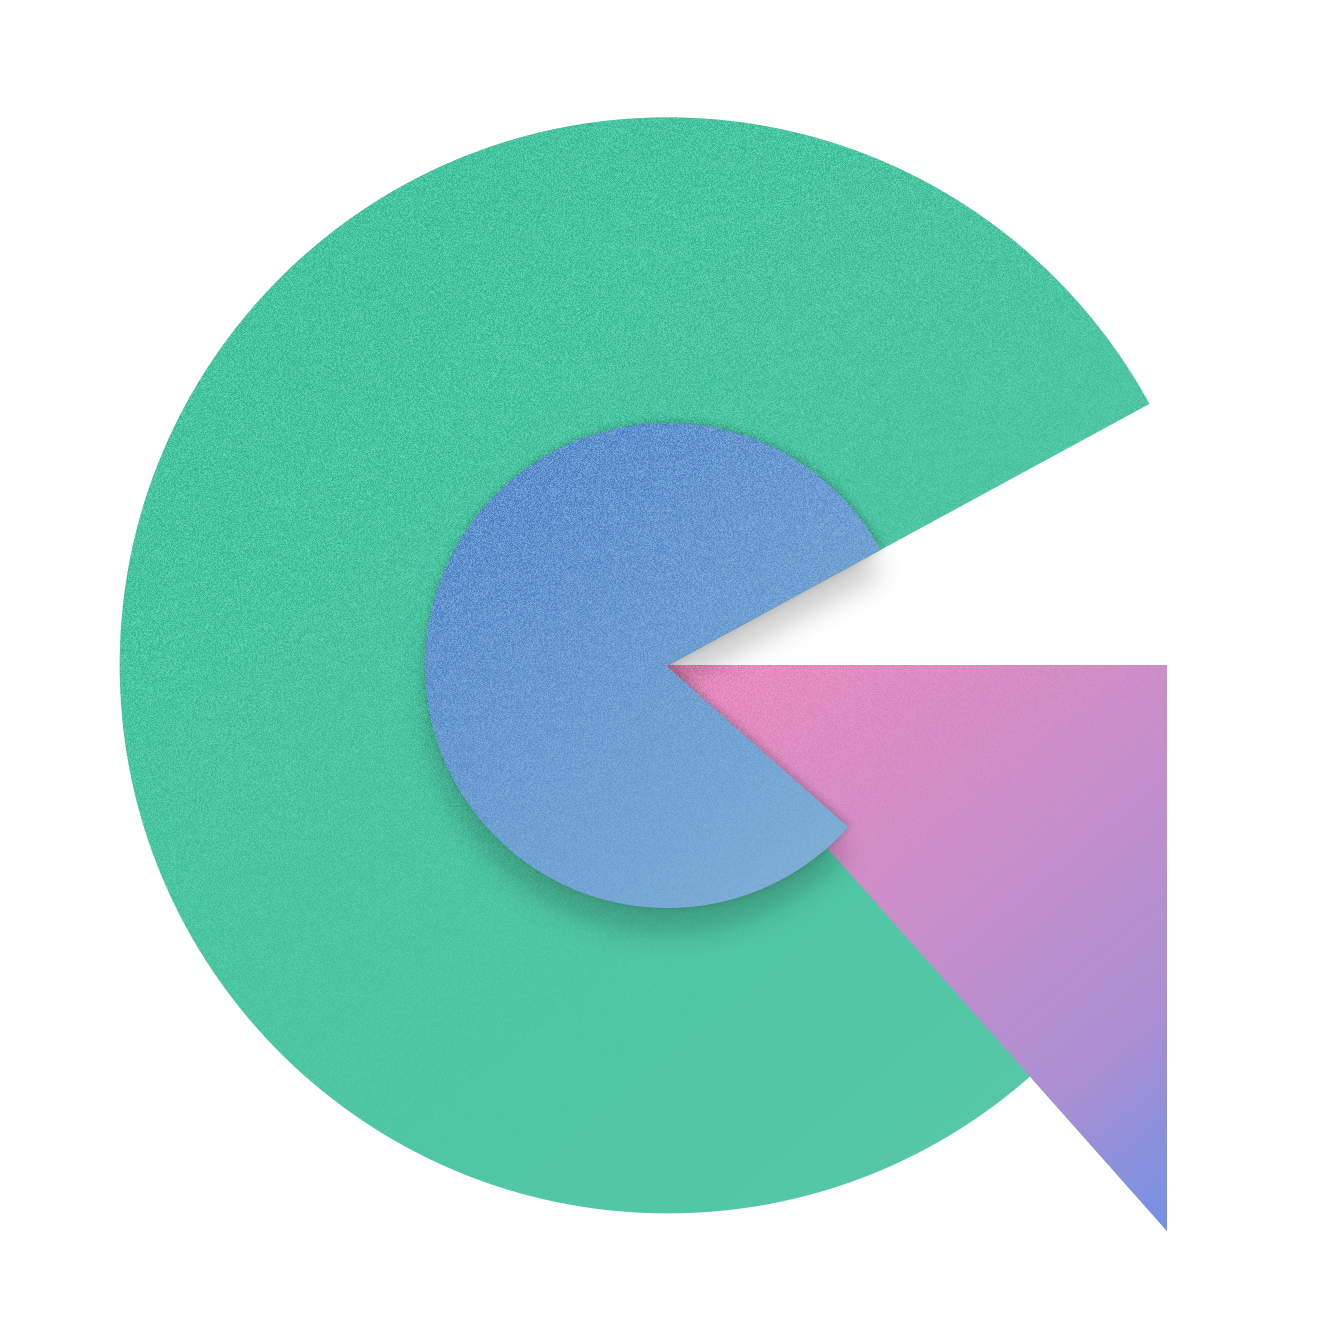 Abstract G